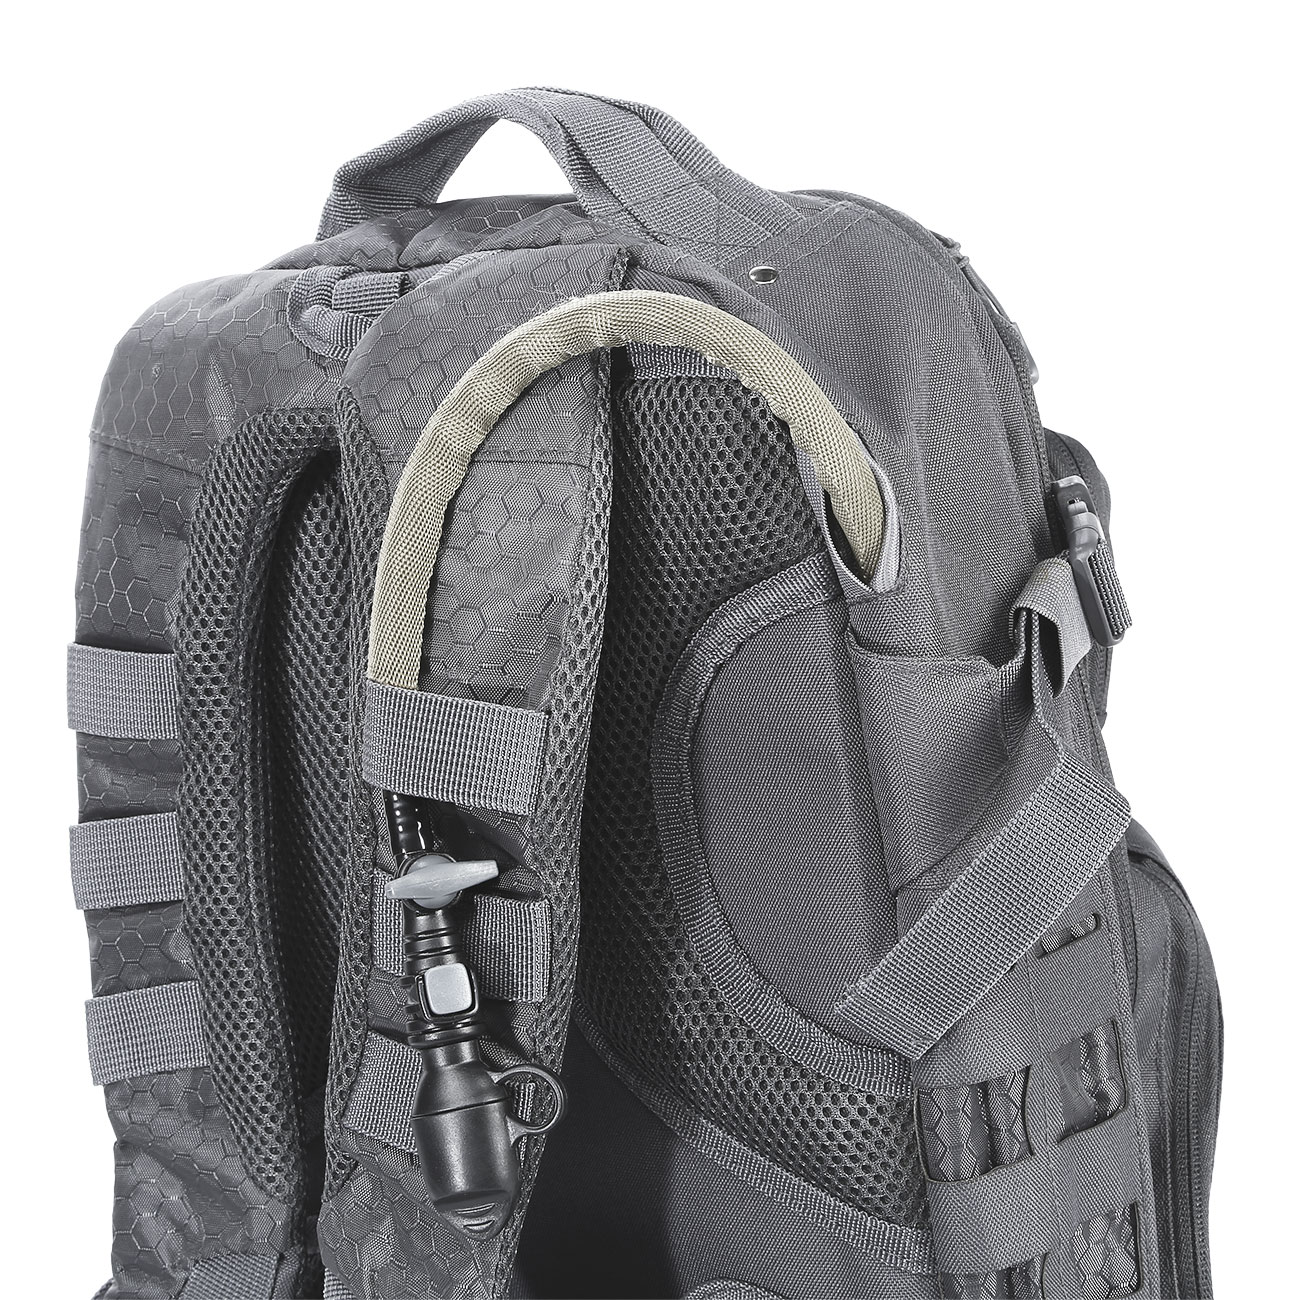 MFH Rucksack Operation I 30 Liter urban grau 10